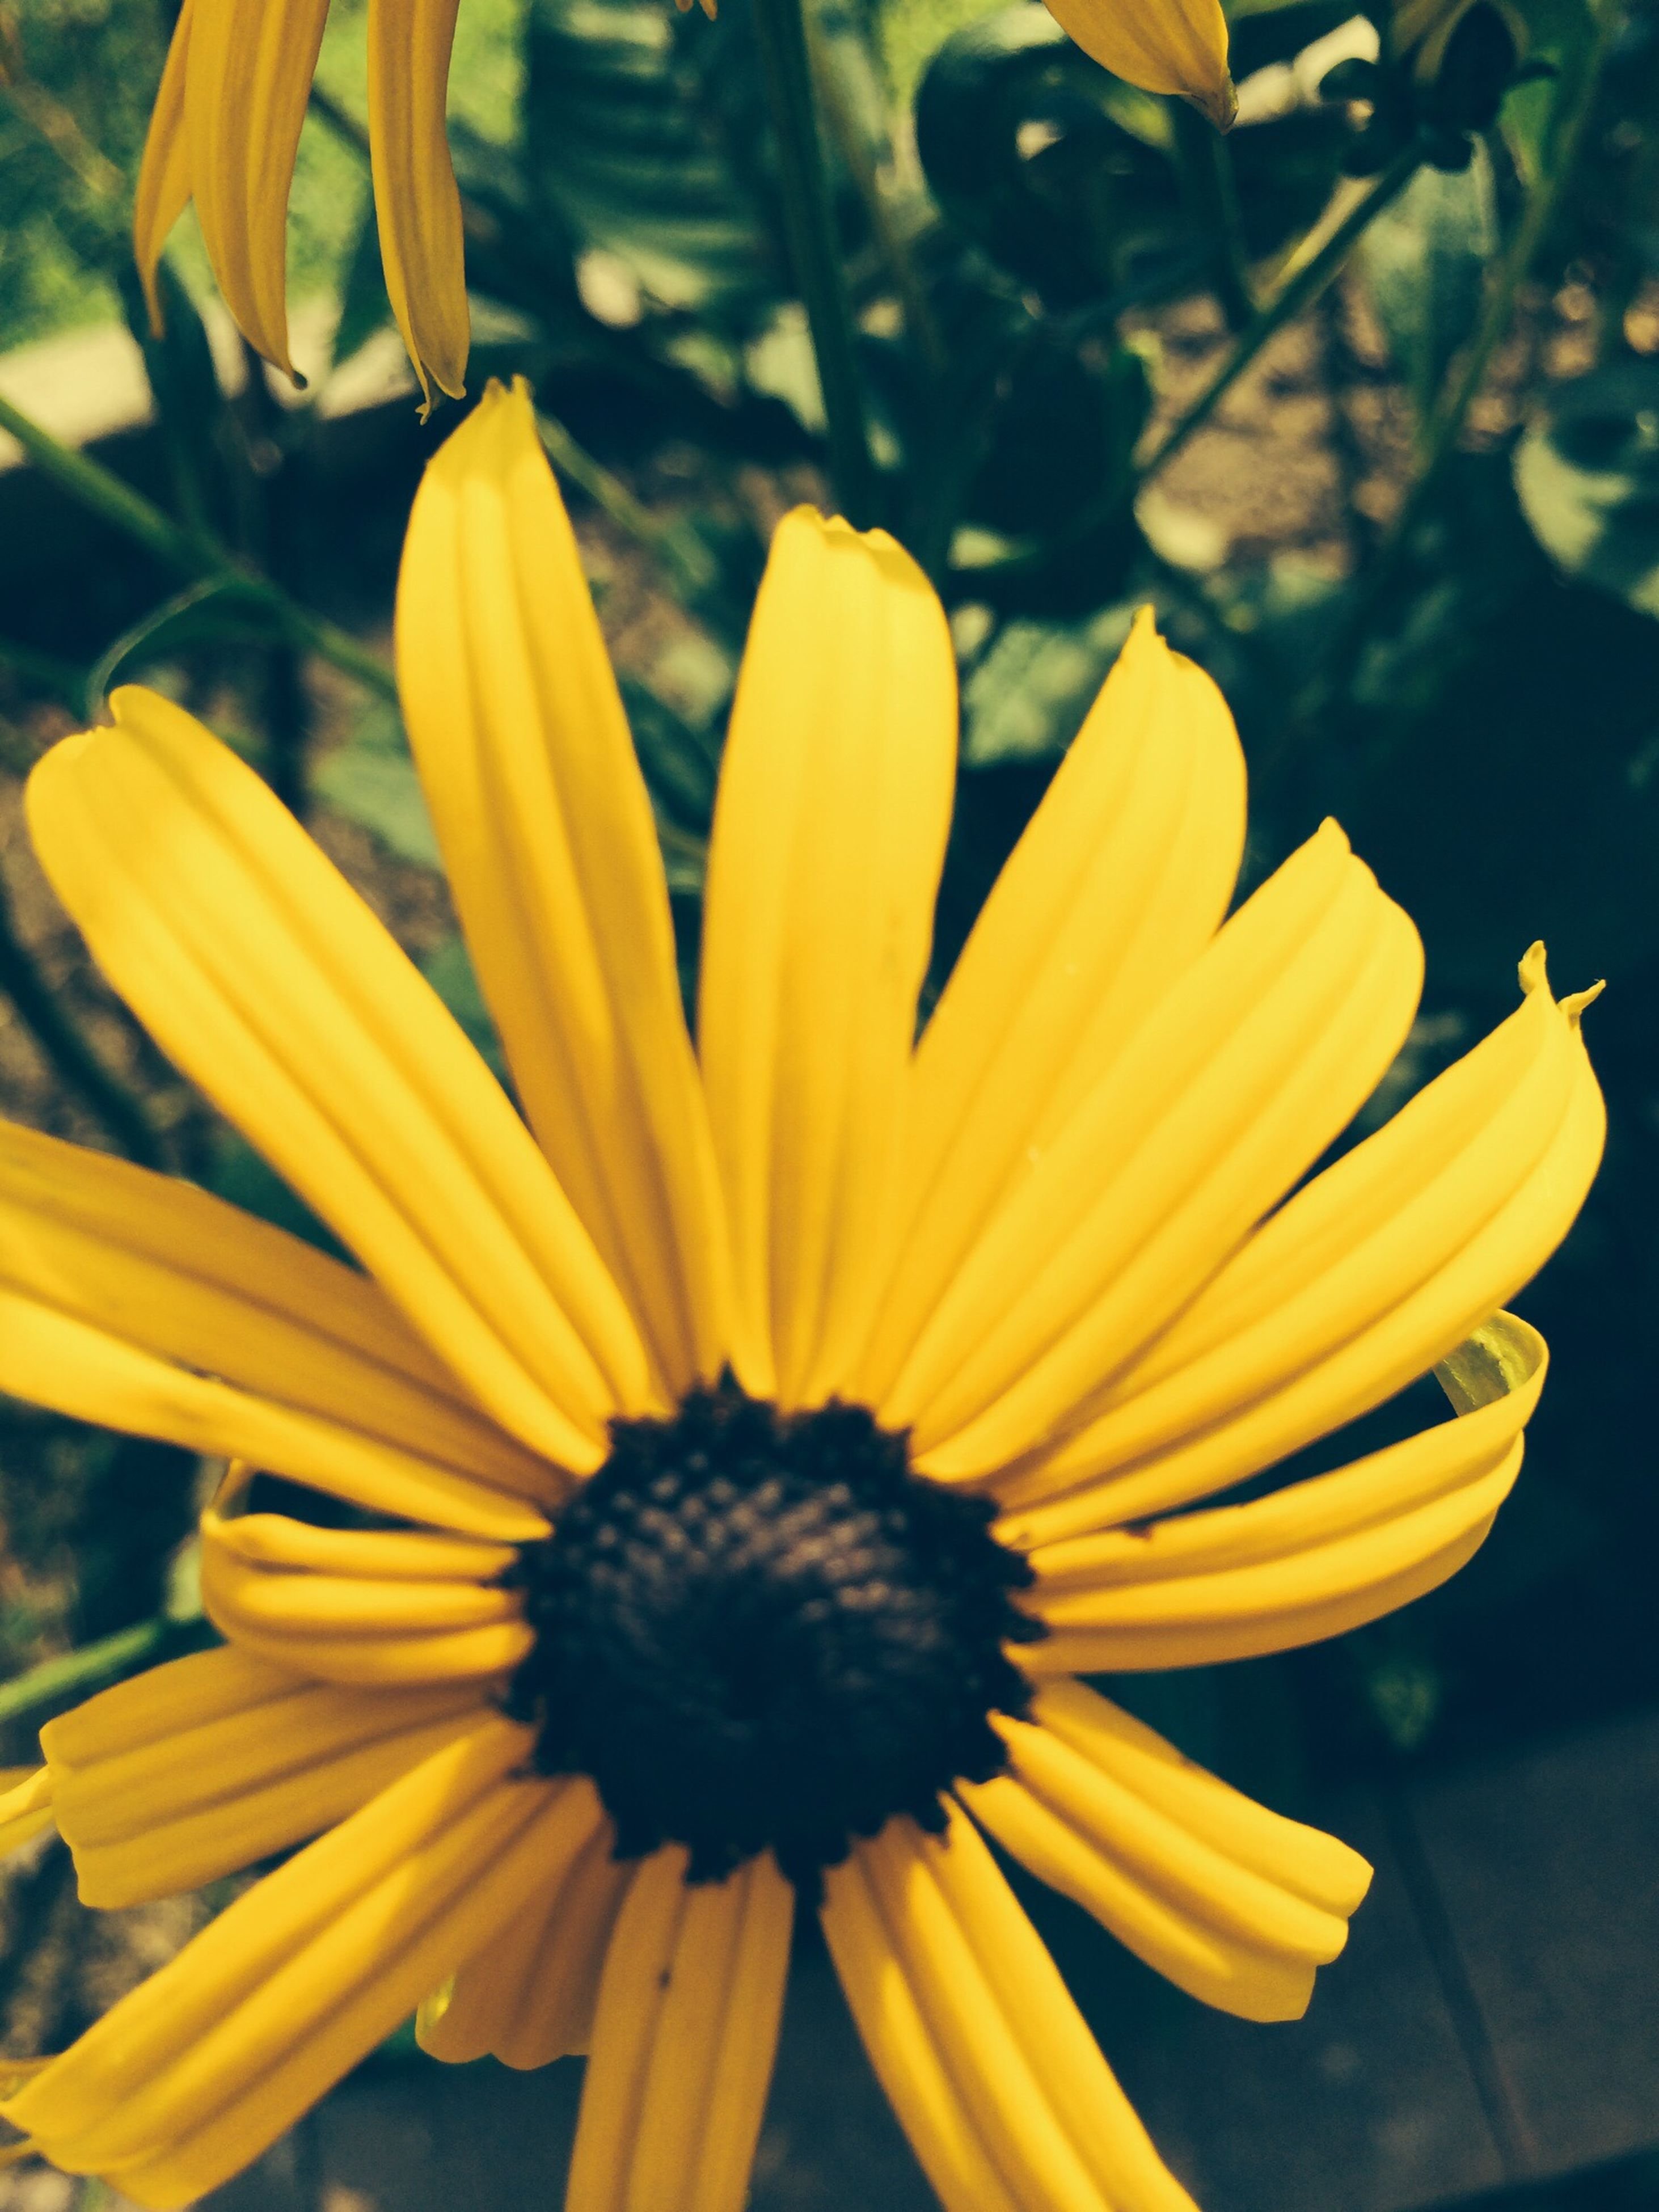 flower, yellow, petal, flower head, freshness, fragility, focus on foreground, close-up, beauty in nature, pollen, blooming, growth, nature, plant, in bloom, no people, outdoors, day, vibrant color, single flower